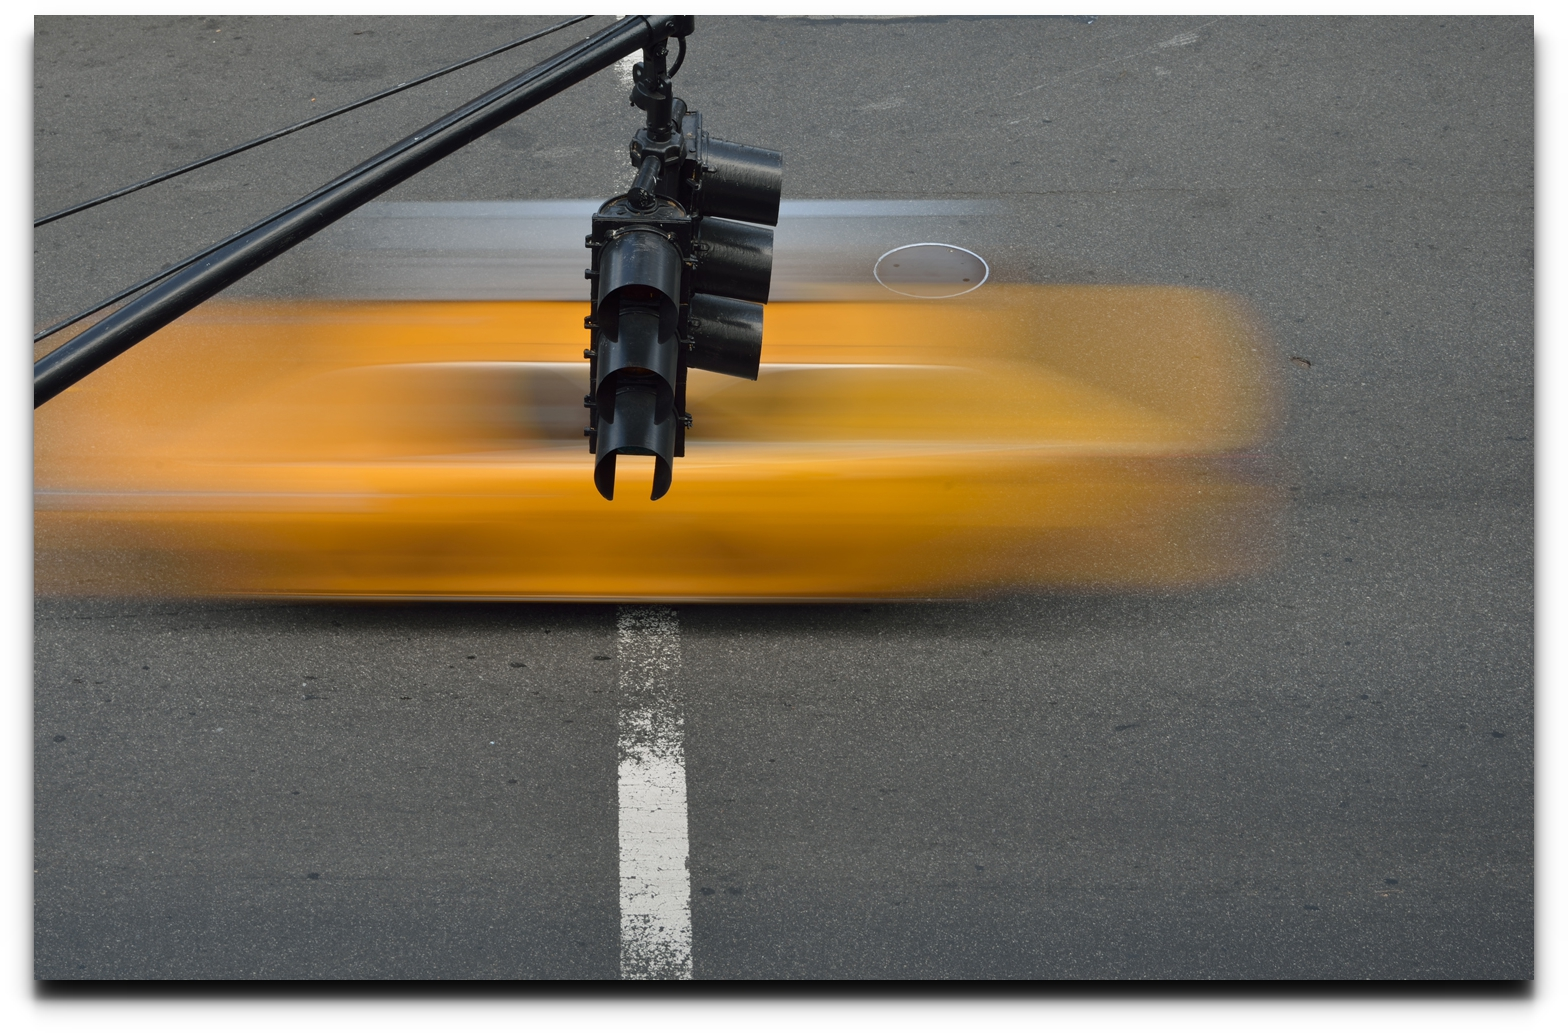 D8E_3229BlurCabLight2 2.jpg